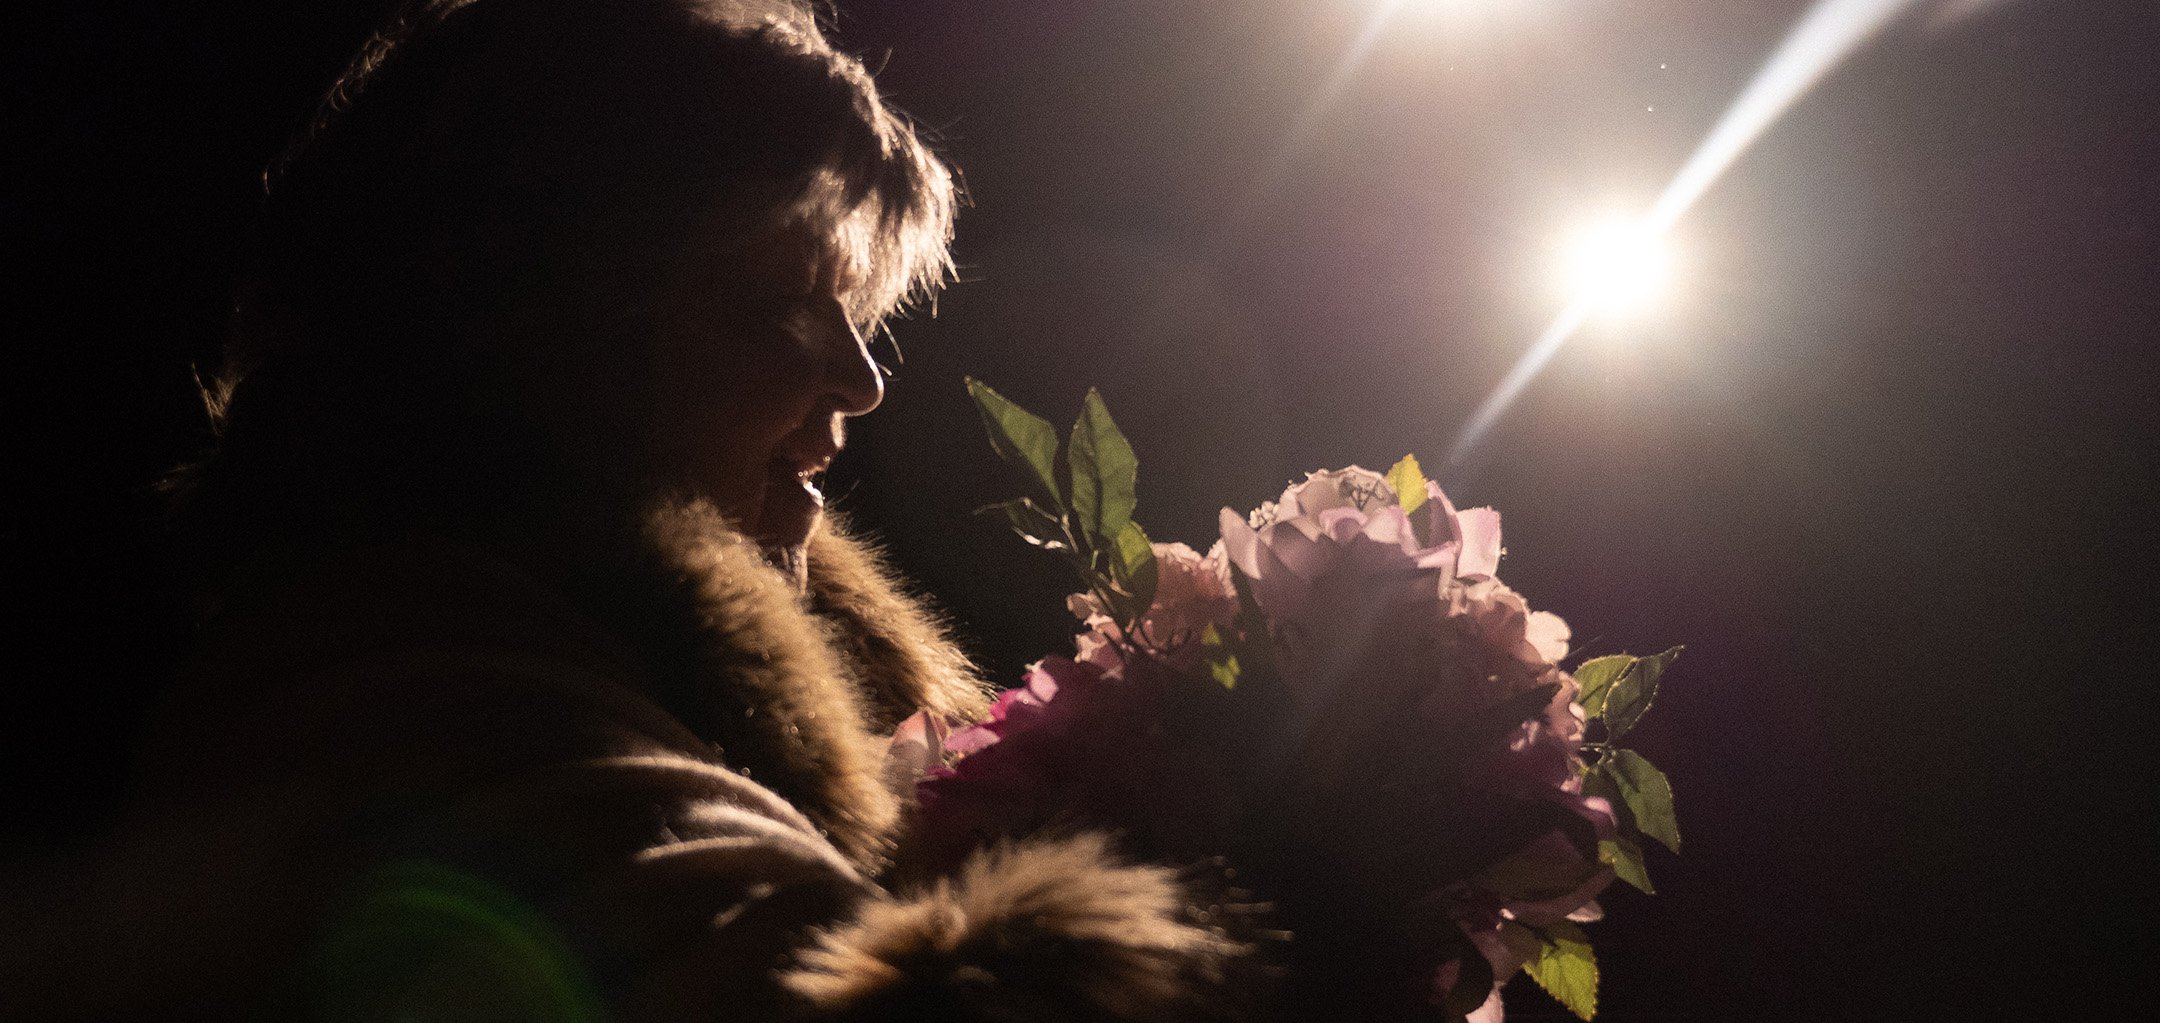 A still from Laura's Choice - holding flowers